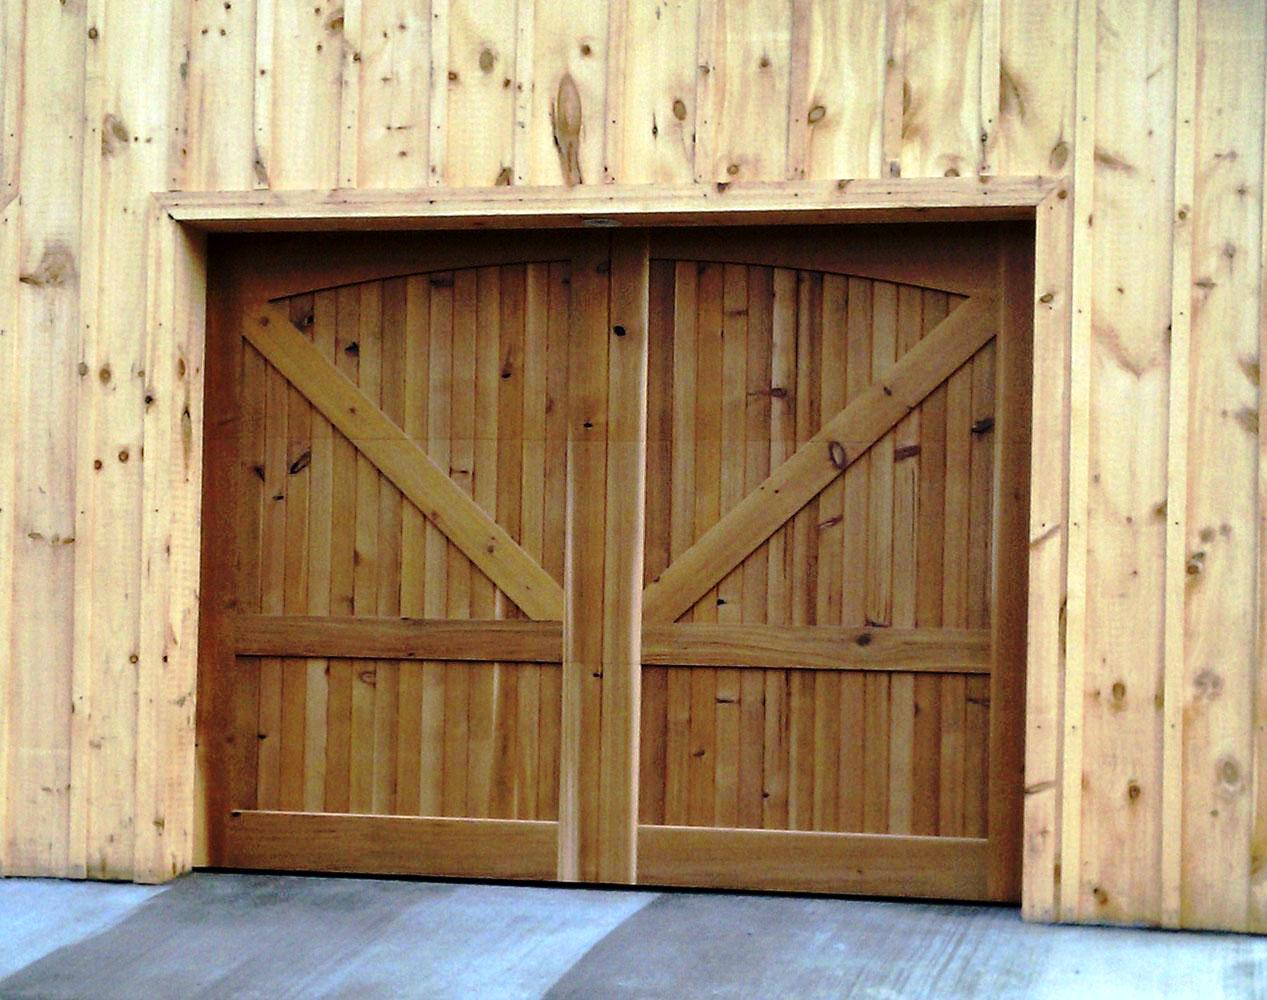 Wooden Garage Doors Lowes Schmidt Gallery Design